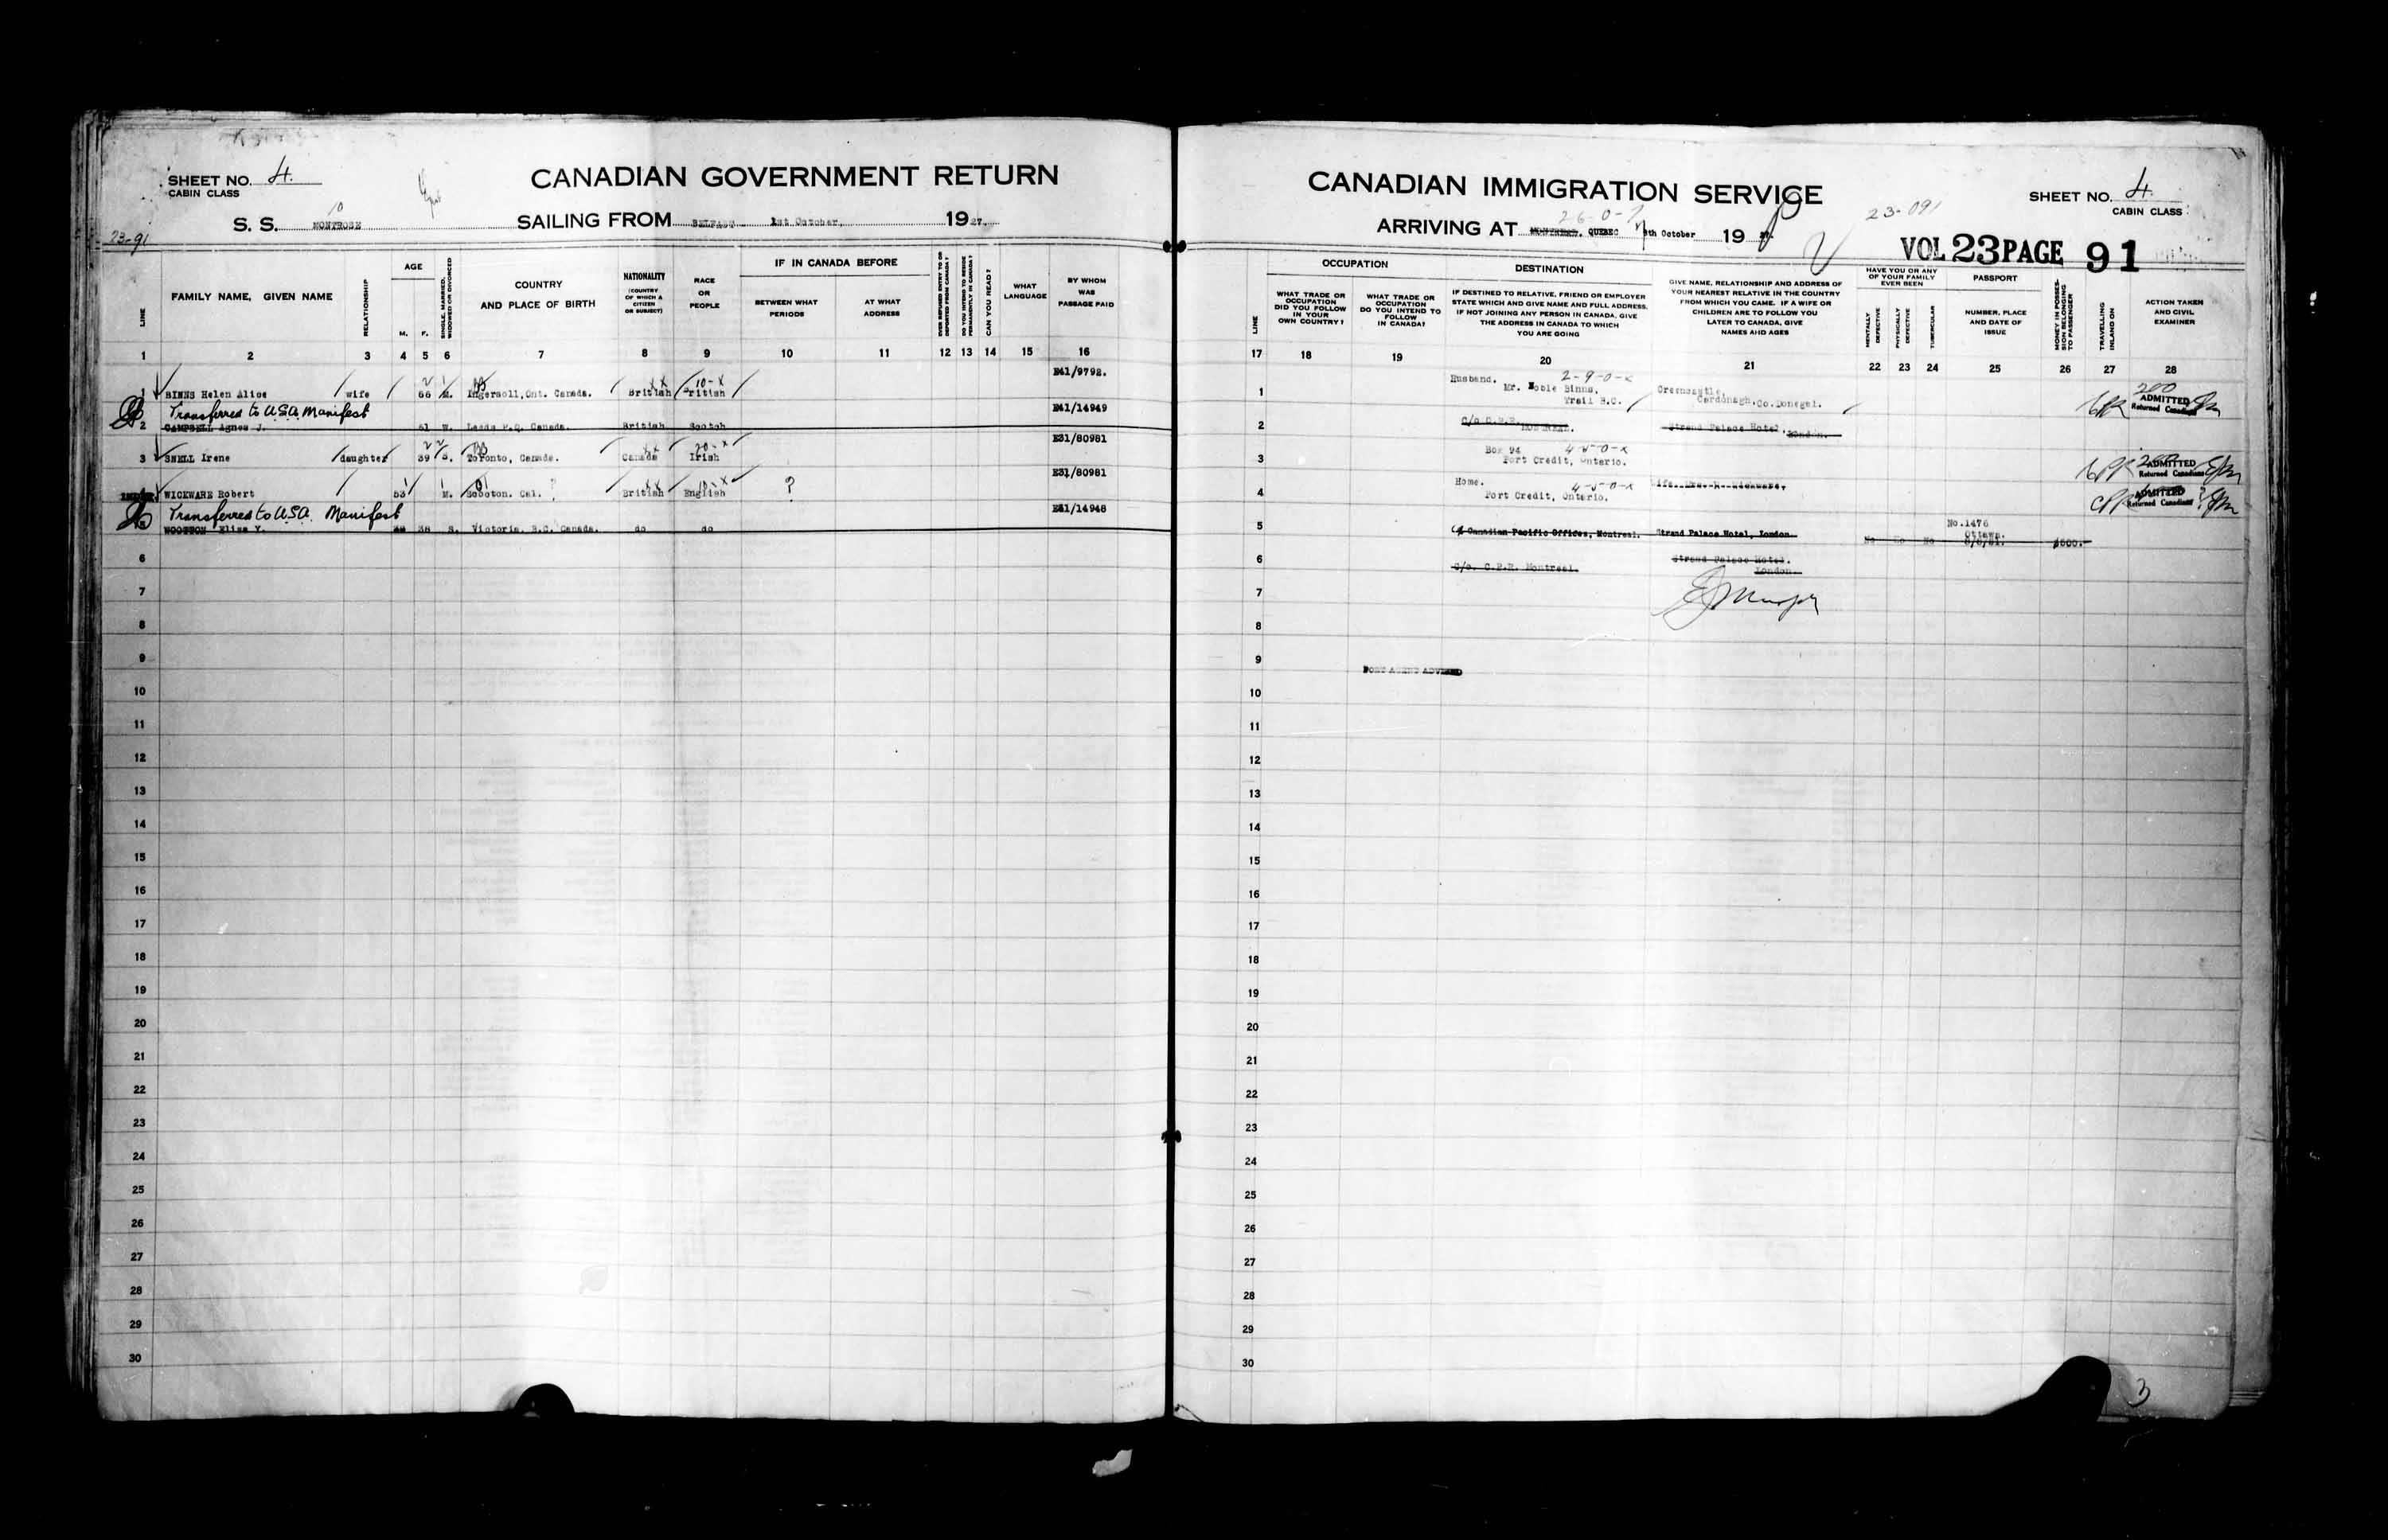 Title: Passenger Lists: Quebec City (1925-1935) - Mikan Number: 134839 - Microform: t-14738